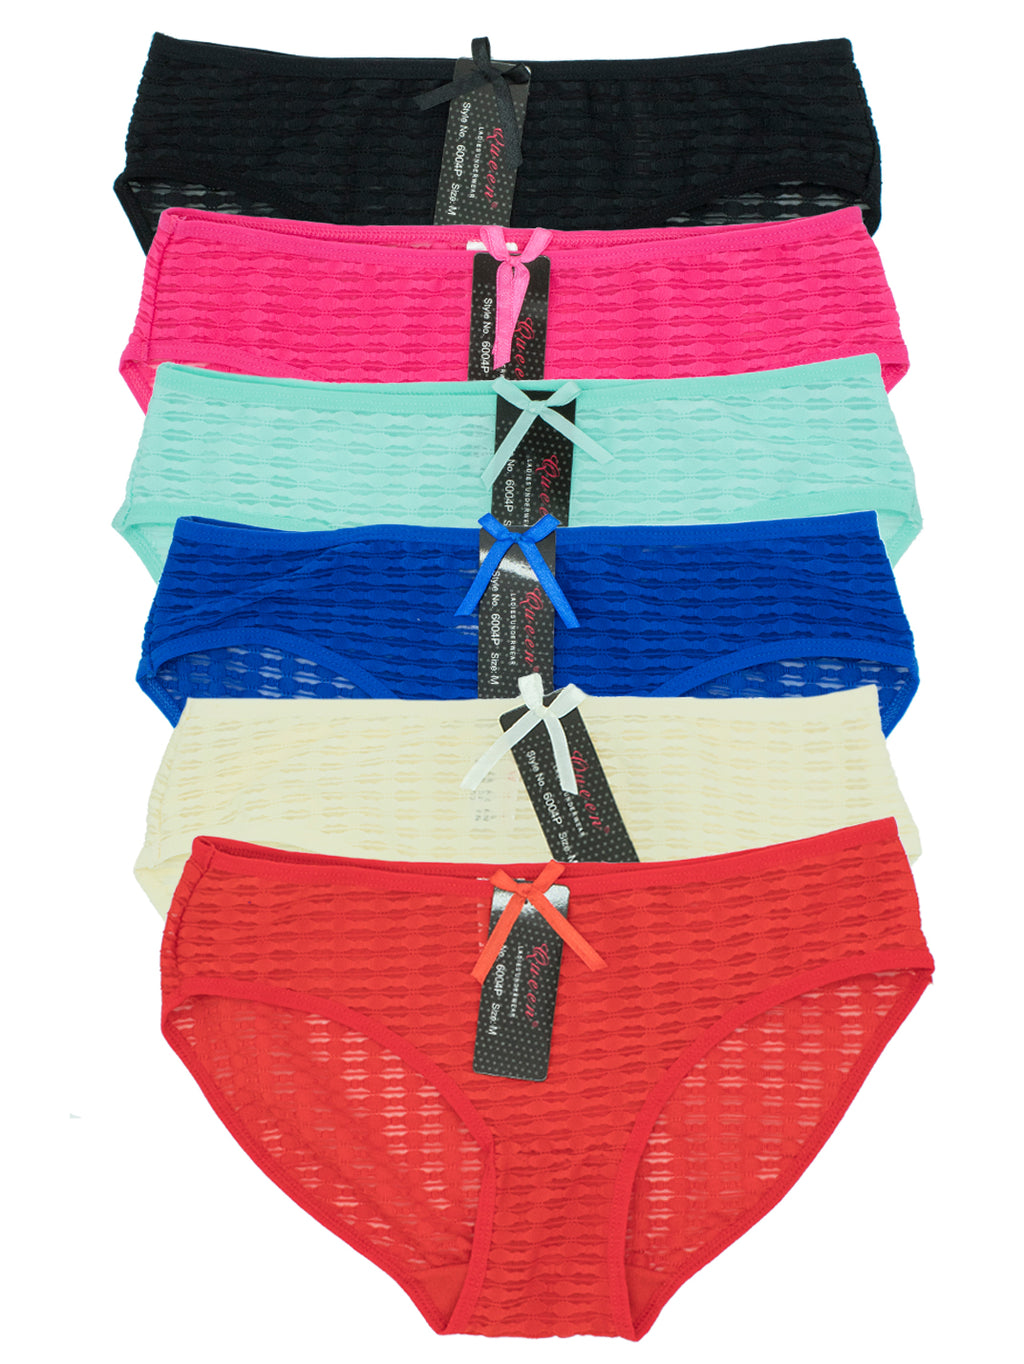 Sexy Illusion Bikini Panty (6pcs/PACK)